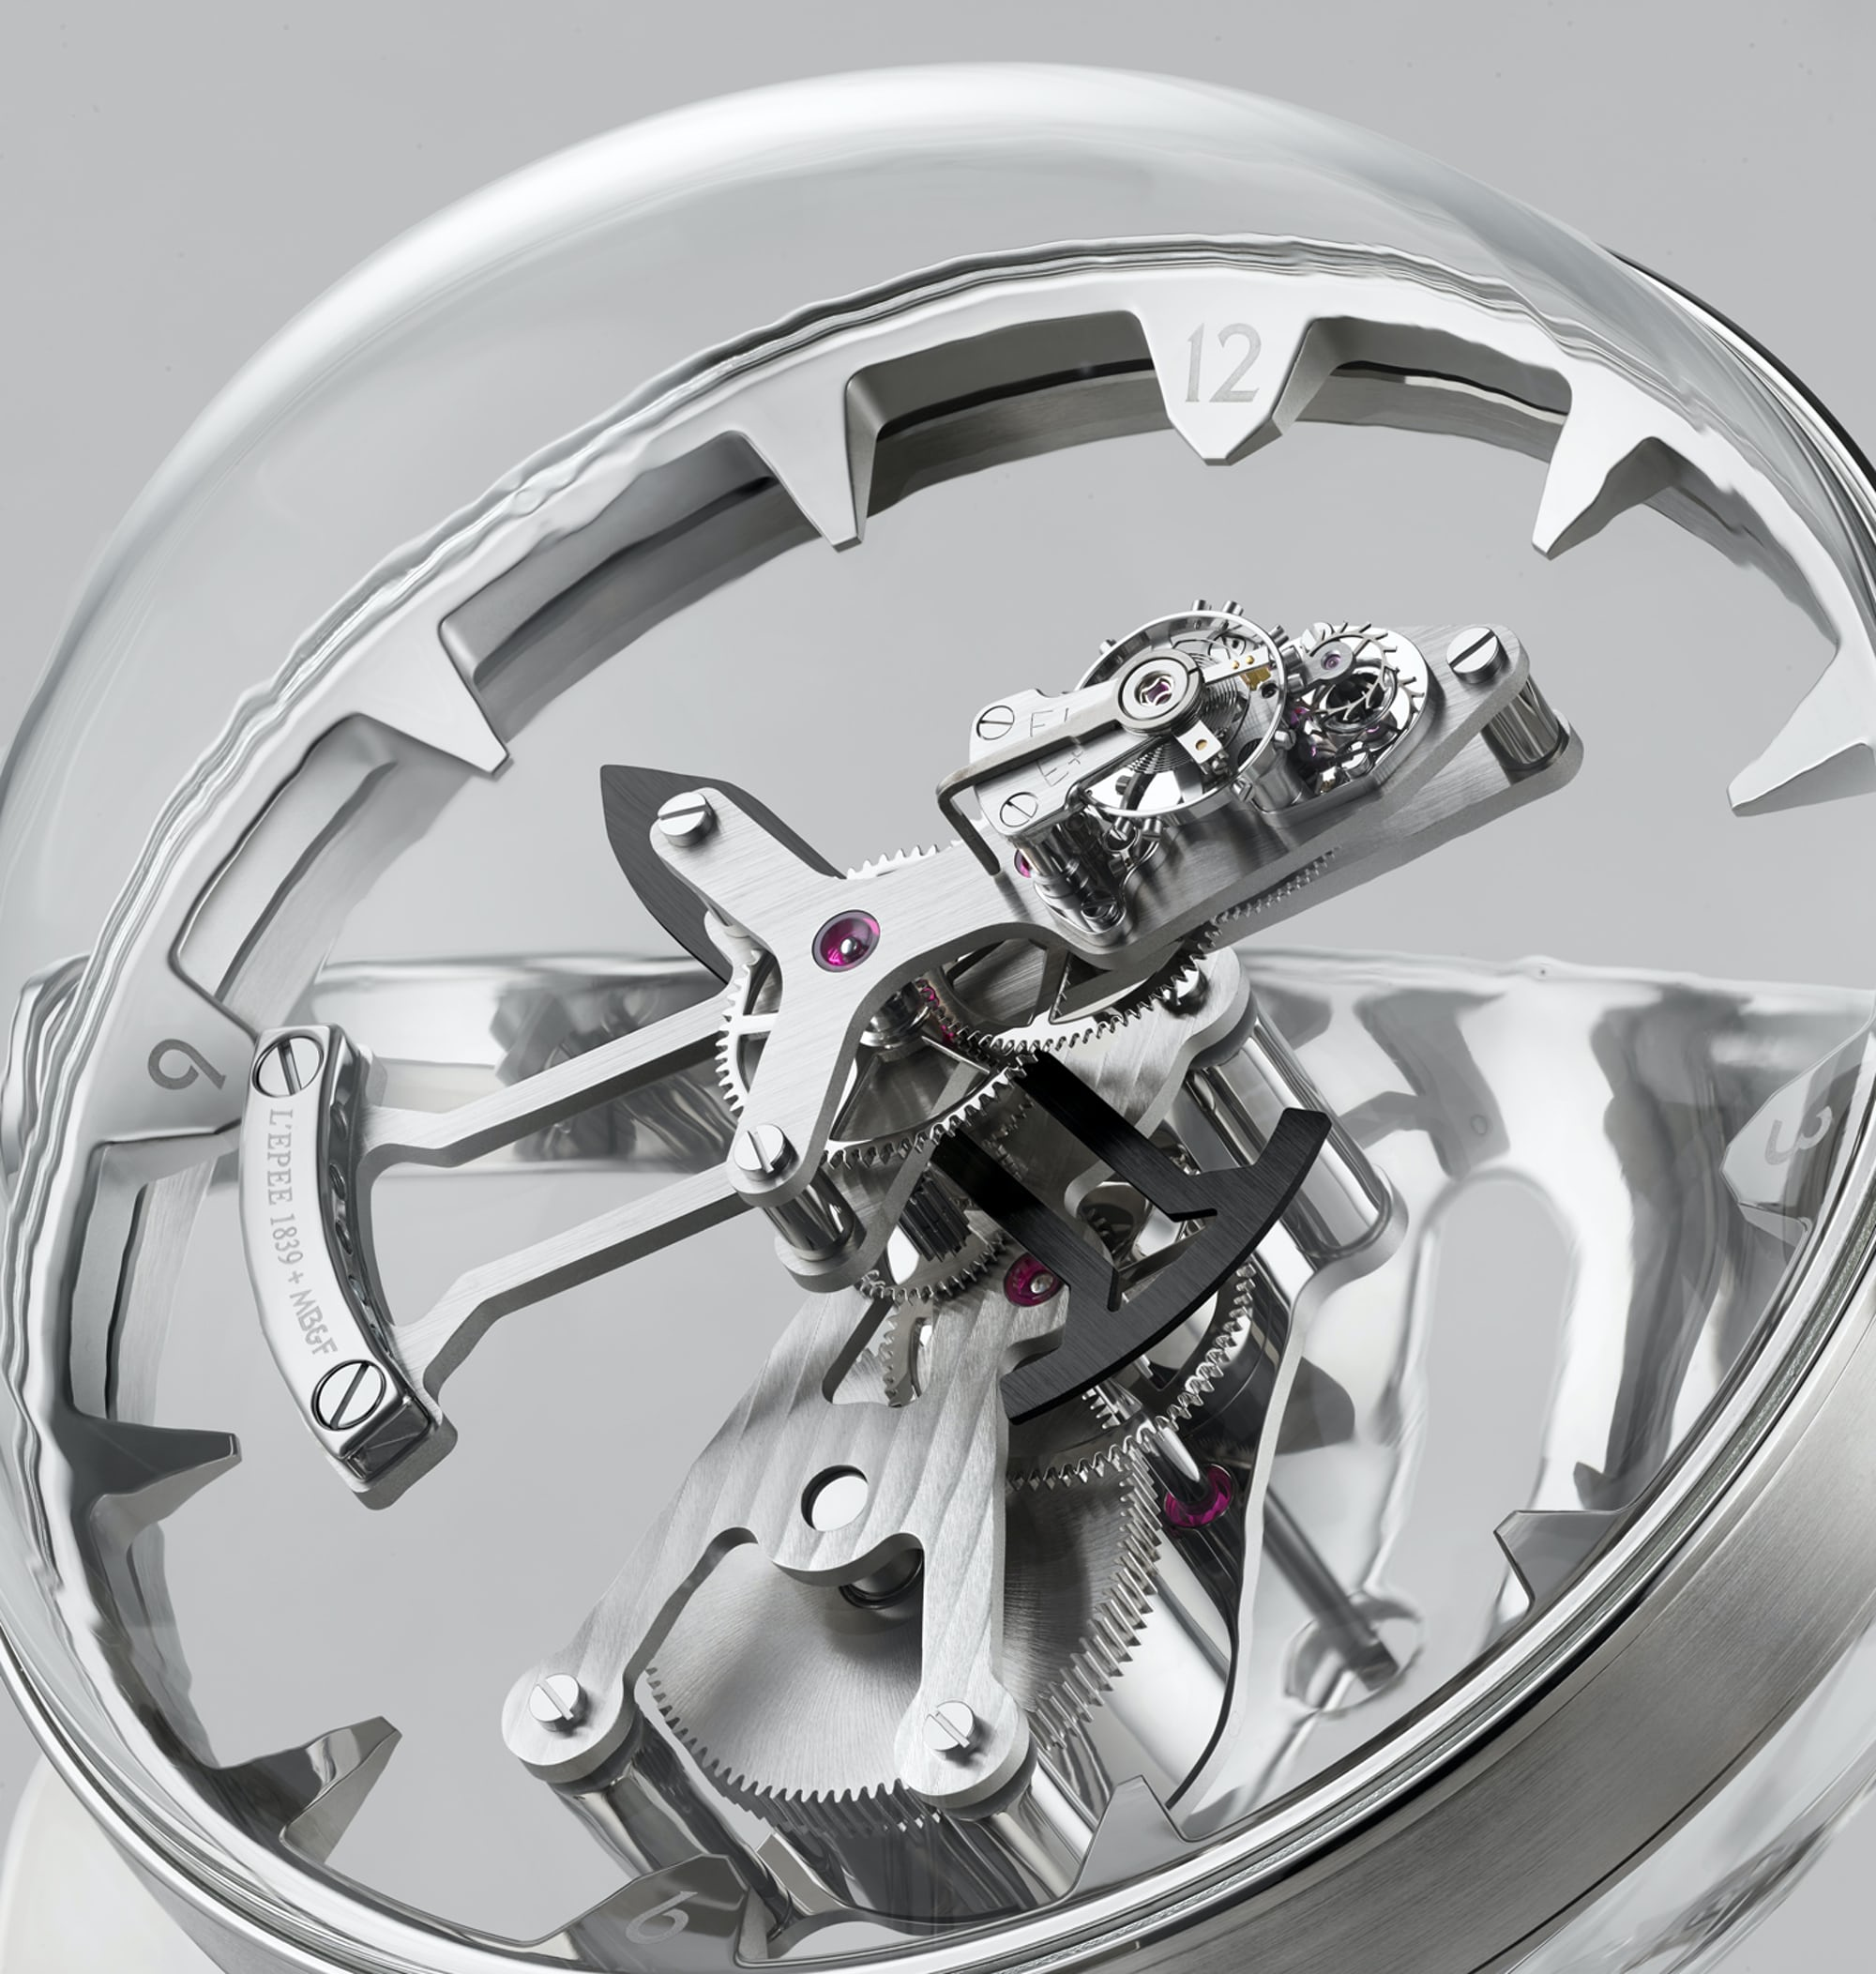 MB&F Octopod spherical polycarbonate case. Introducing: The MB&F And L'Epe 1839 Octopod Clock Introducing: The MB&F And L'Epe 1839 Octopod Clock Octopod Closeup LRES RGB